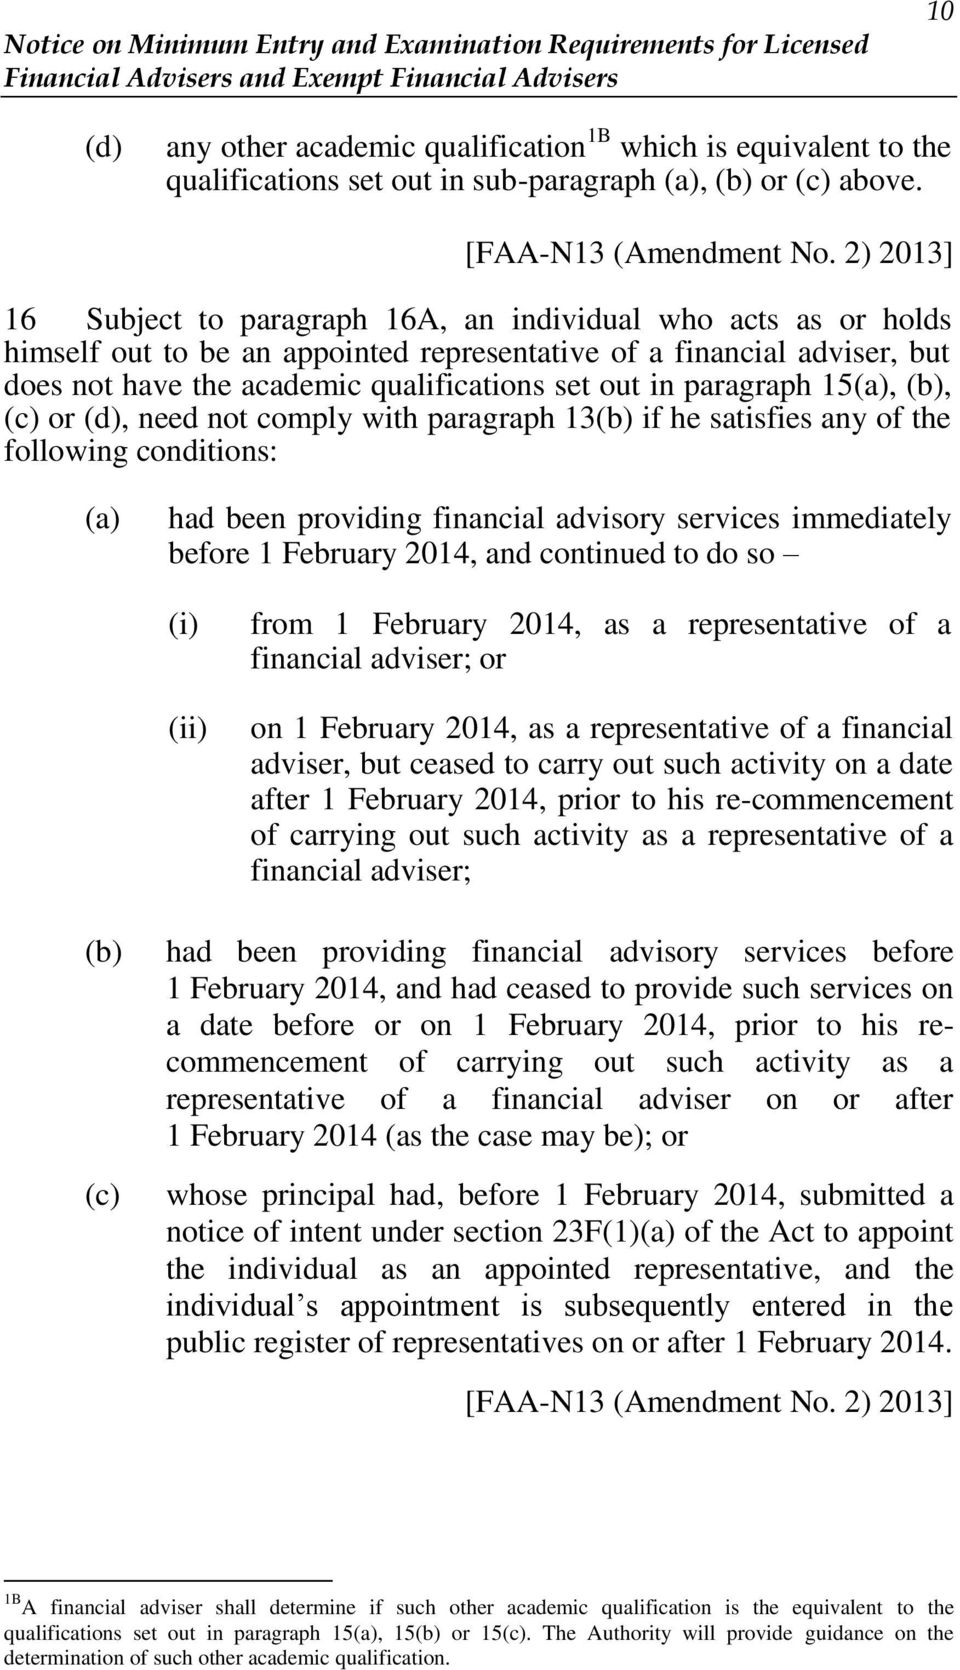 paragraph 15(a), (b), (c) or (d), need not comply with paragraph 13(b) if he satisfies any of the following conditions: (a) had been providing financial advisory services immediately before 1